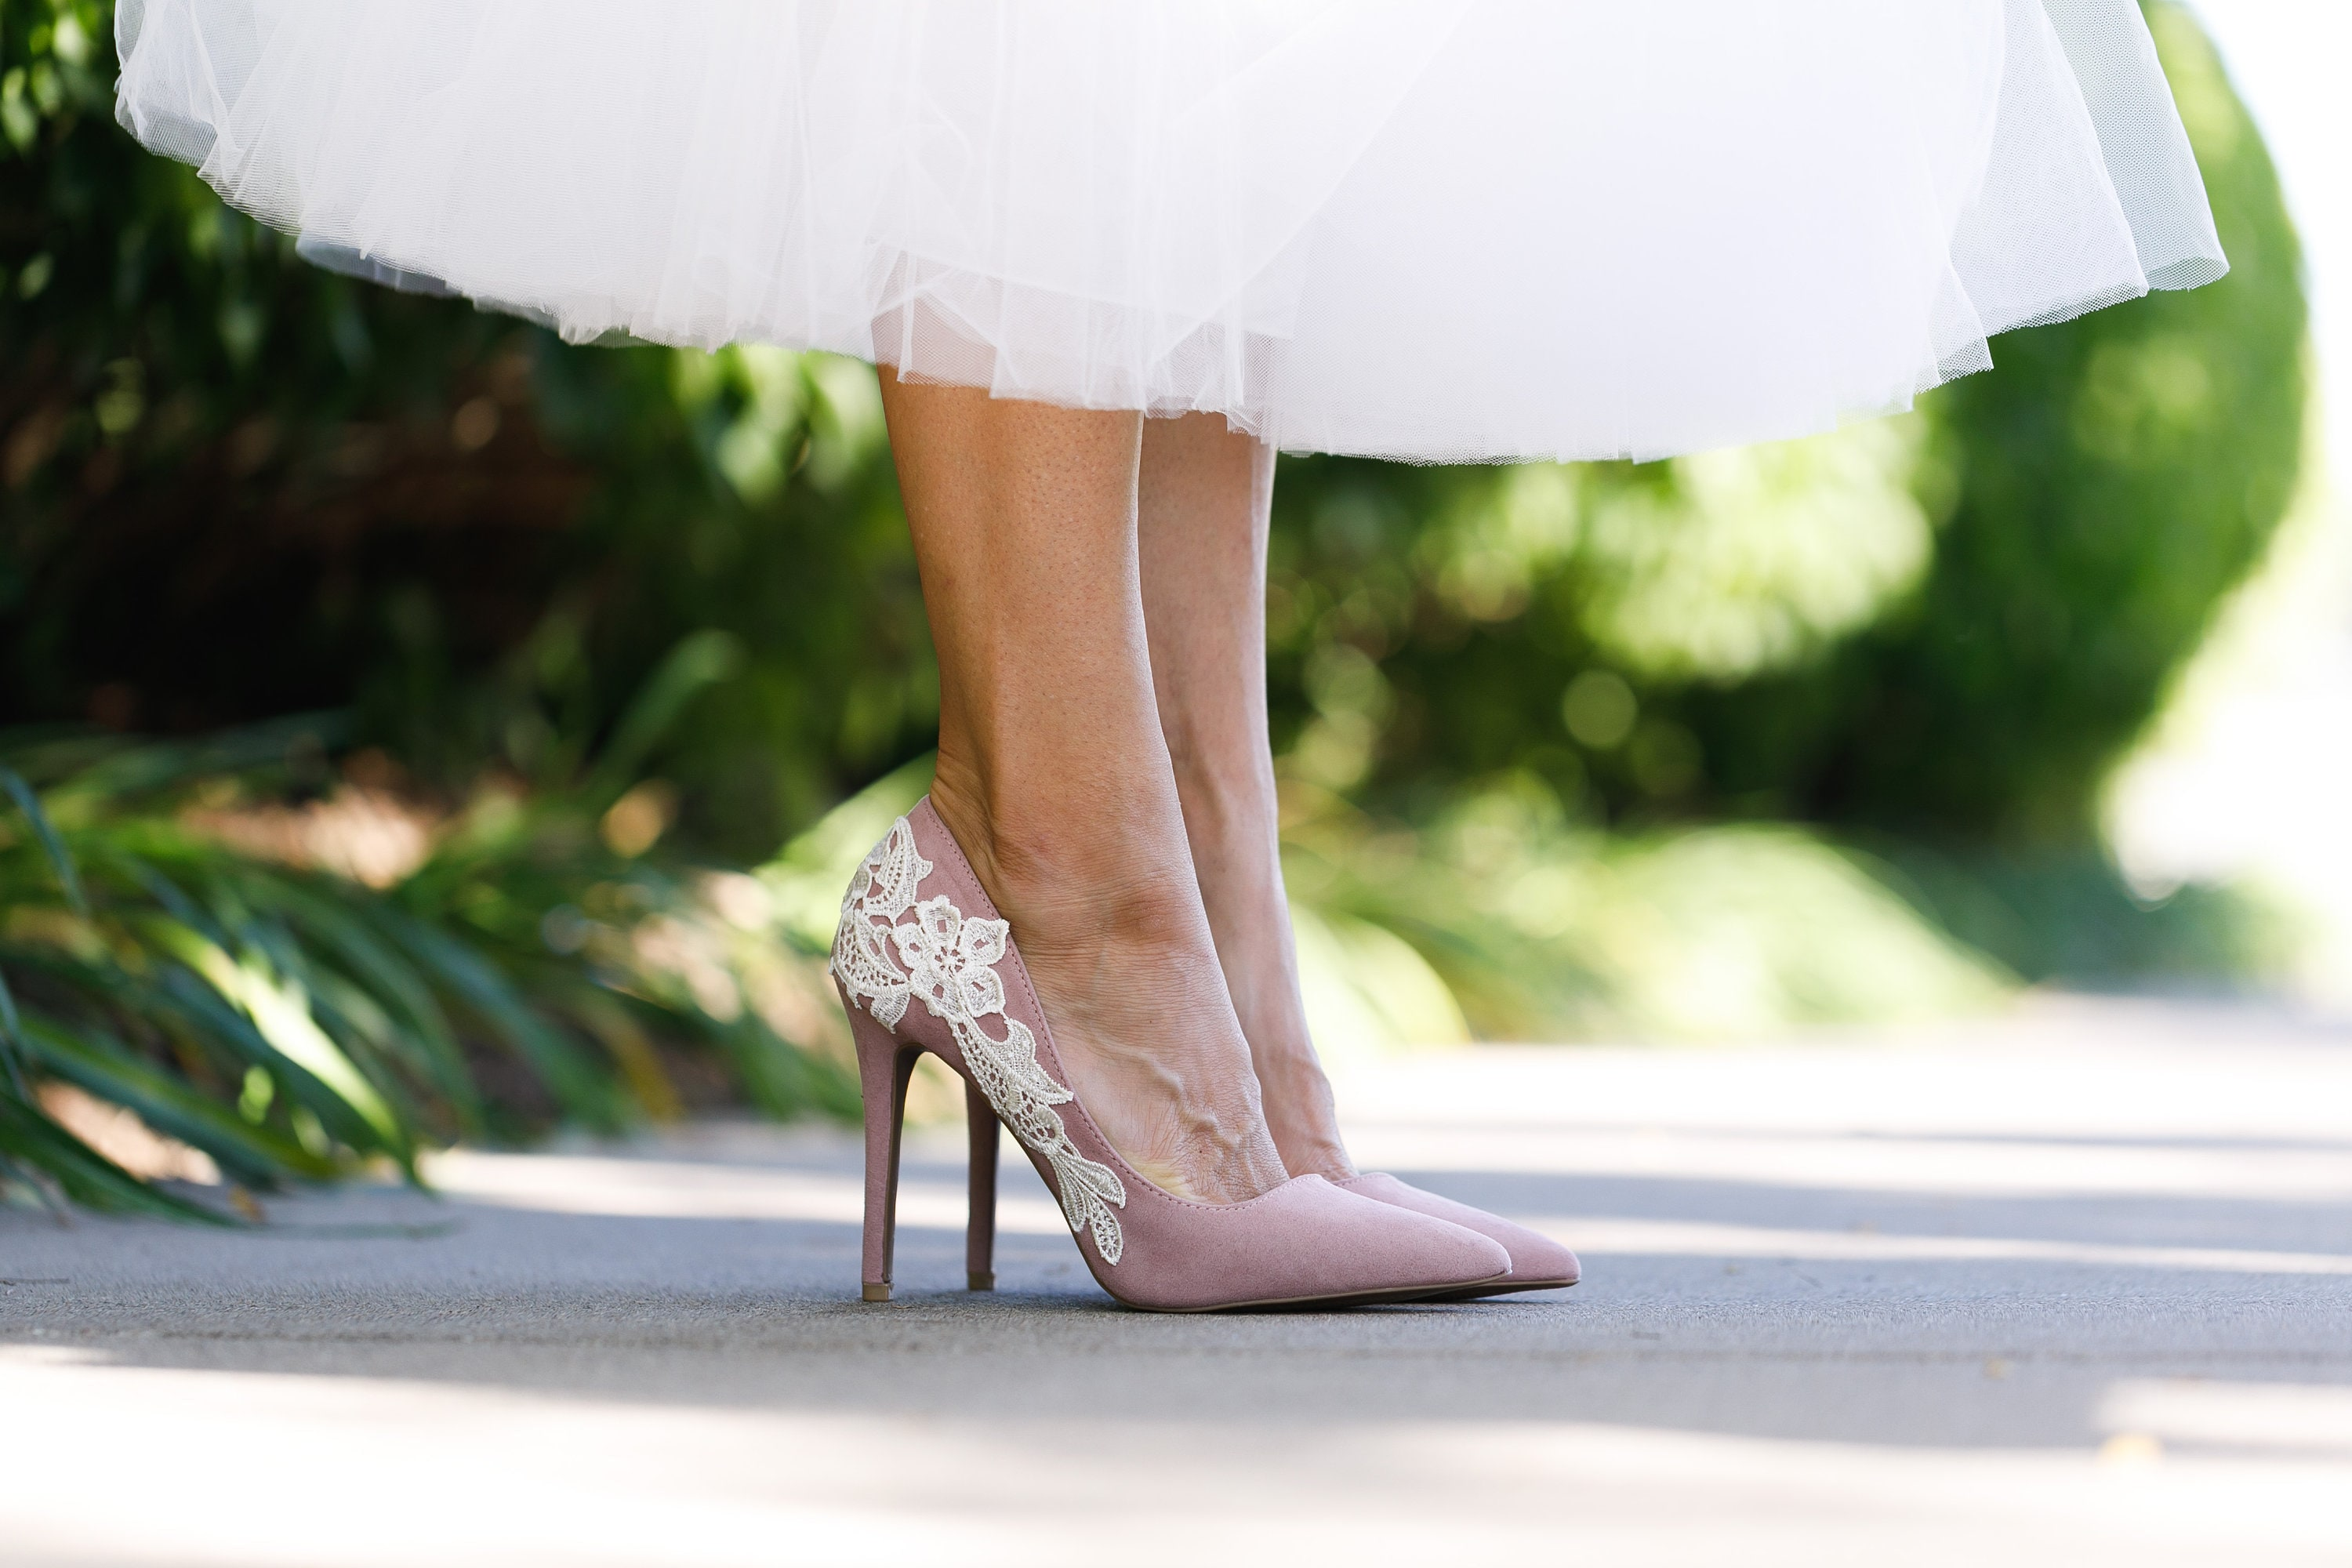 Mauve Heels,Wedding Shoes,Bridal Pumps,Pointed Toe Heels,Wedding  Heels,Bridal Shoes,Gift,Engagement Photos,Bridesmaid Shoes with Ivory Lace